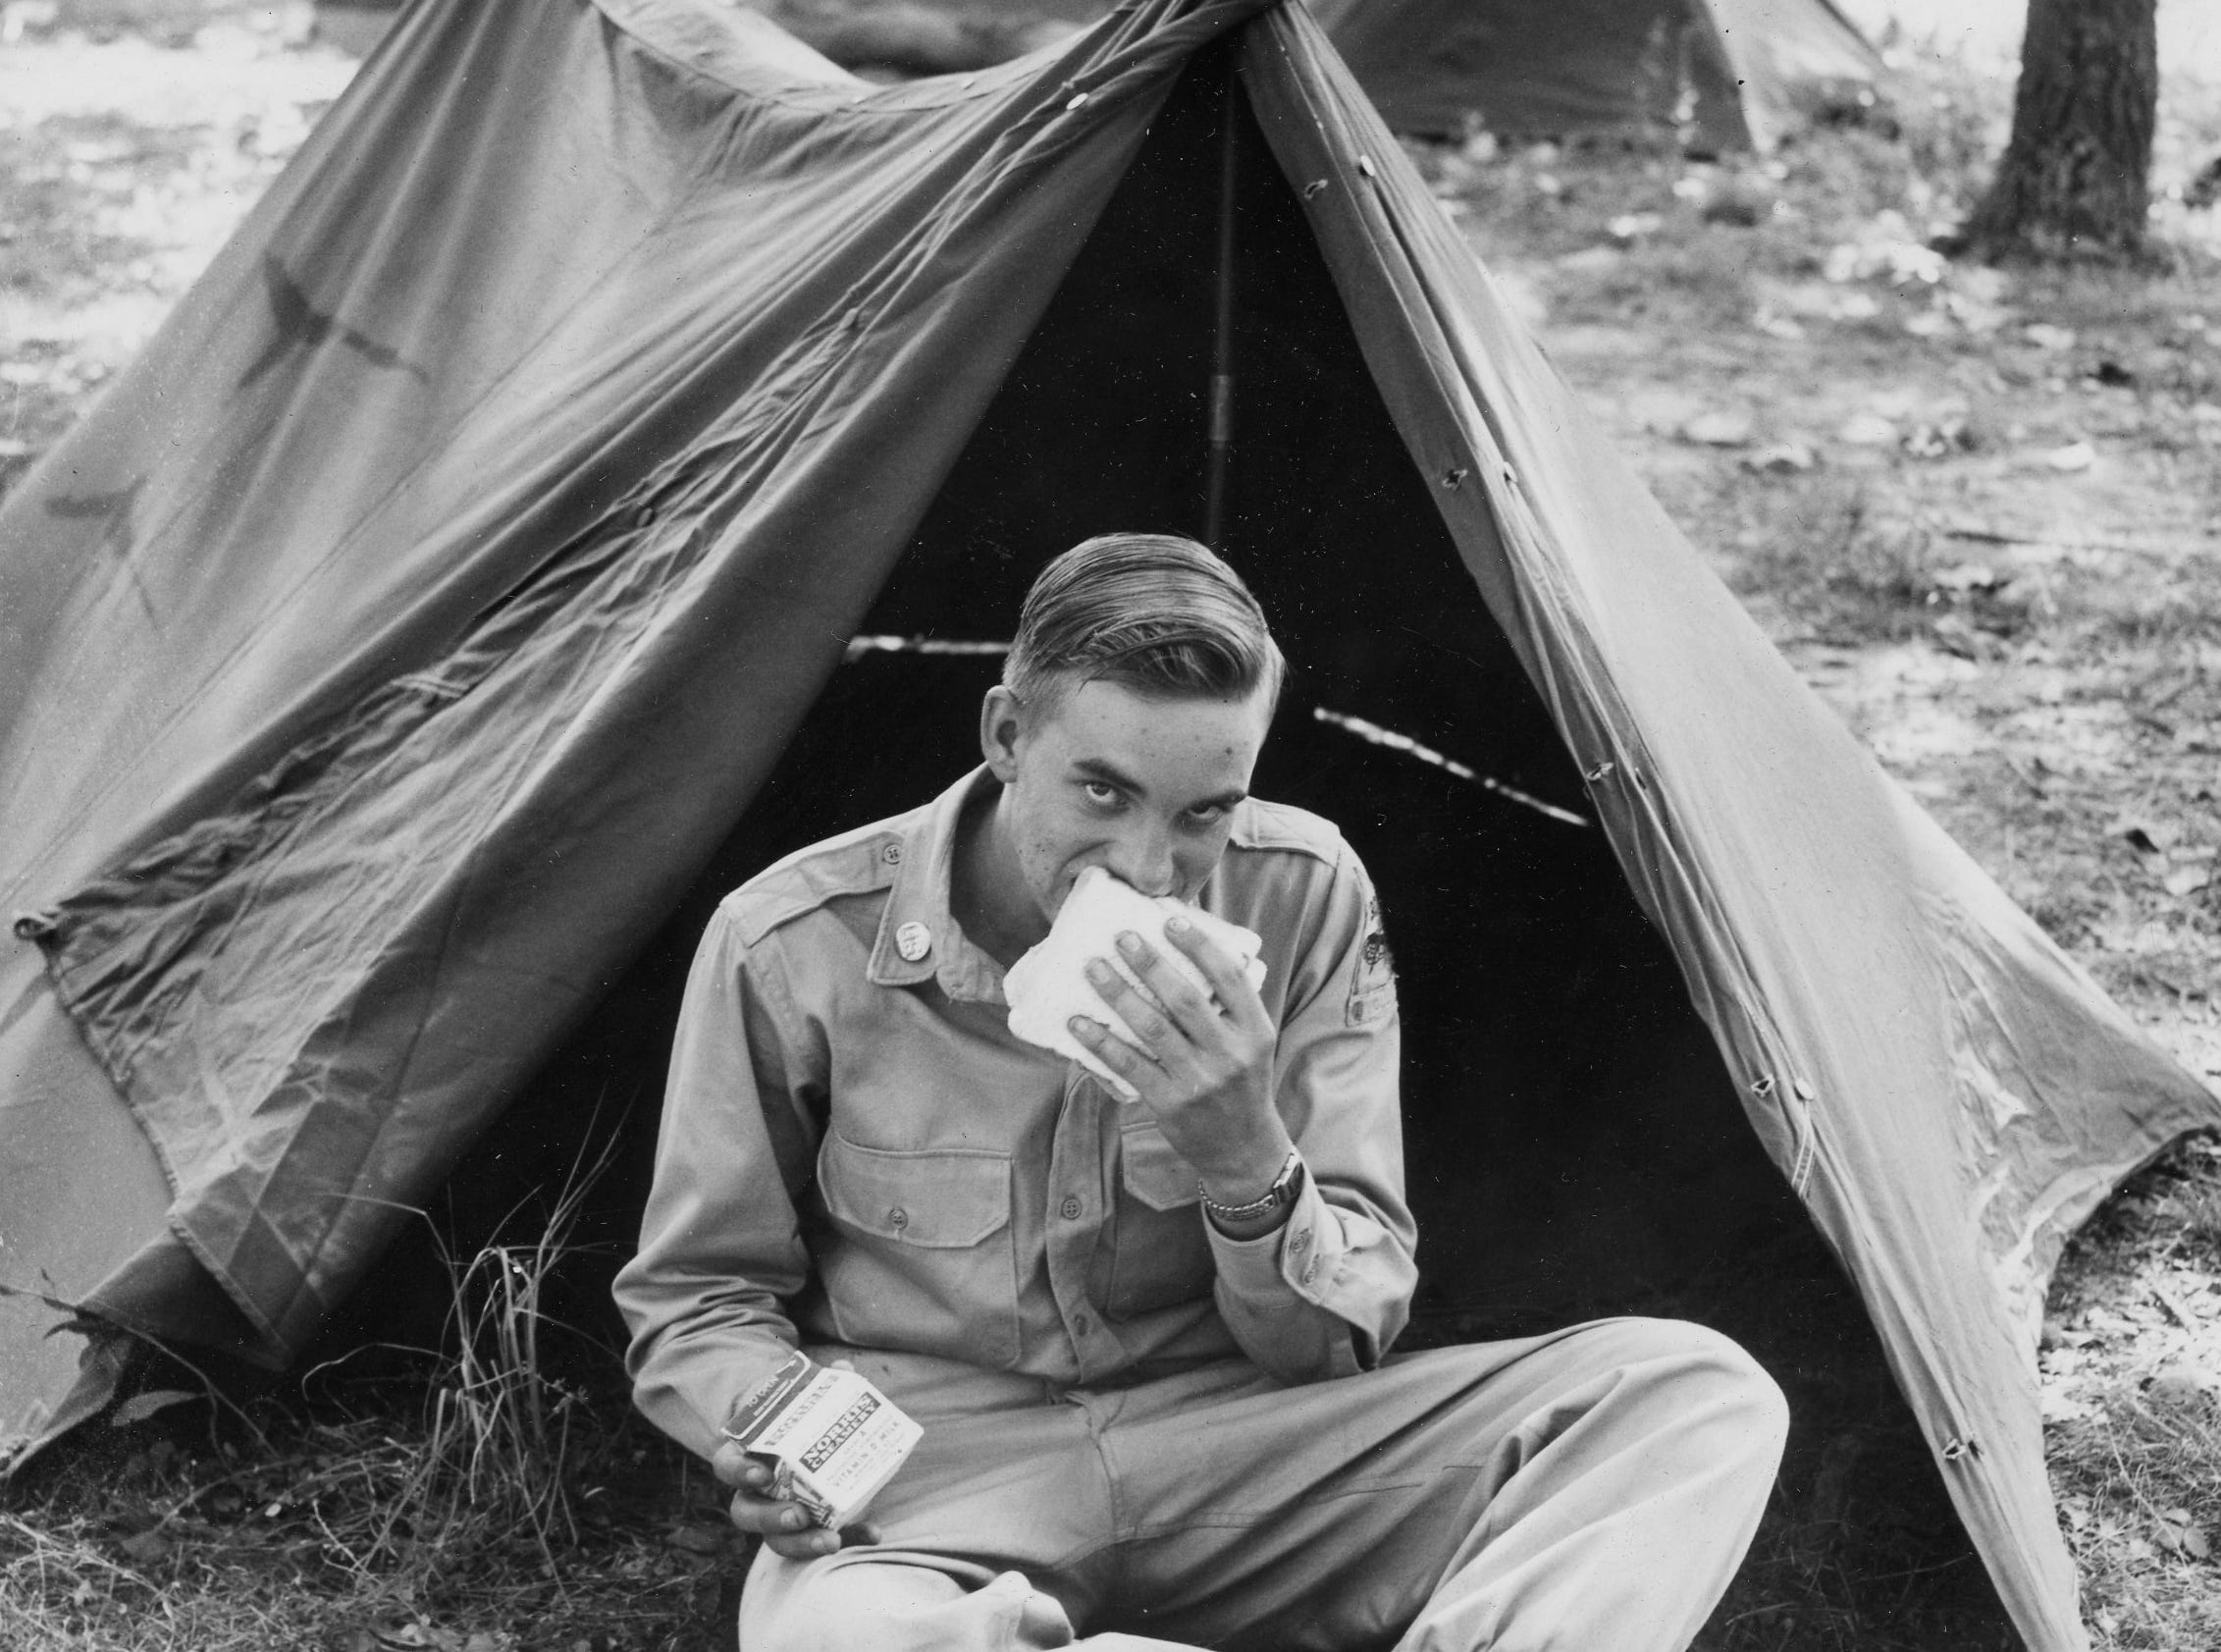 Pvt. Frank Smith of Crossville, member of Tennessee National Guard Company D 230th Recon Battalion, takes time out to eat choe in from of his tent at Clinton. Dated: Sept. 4, 1956.